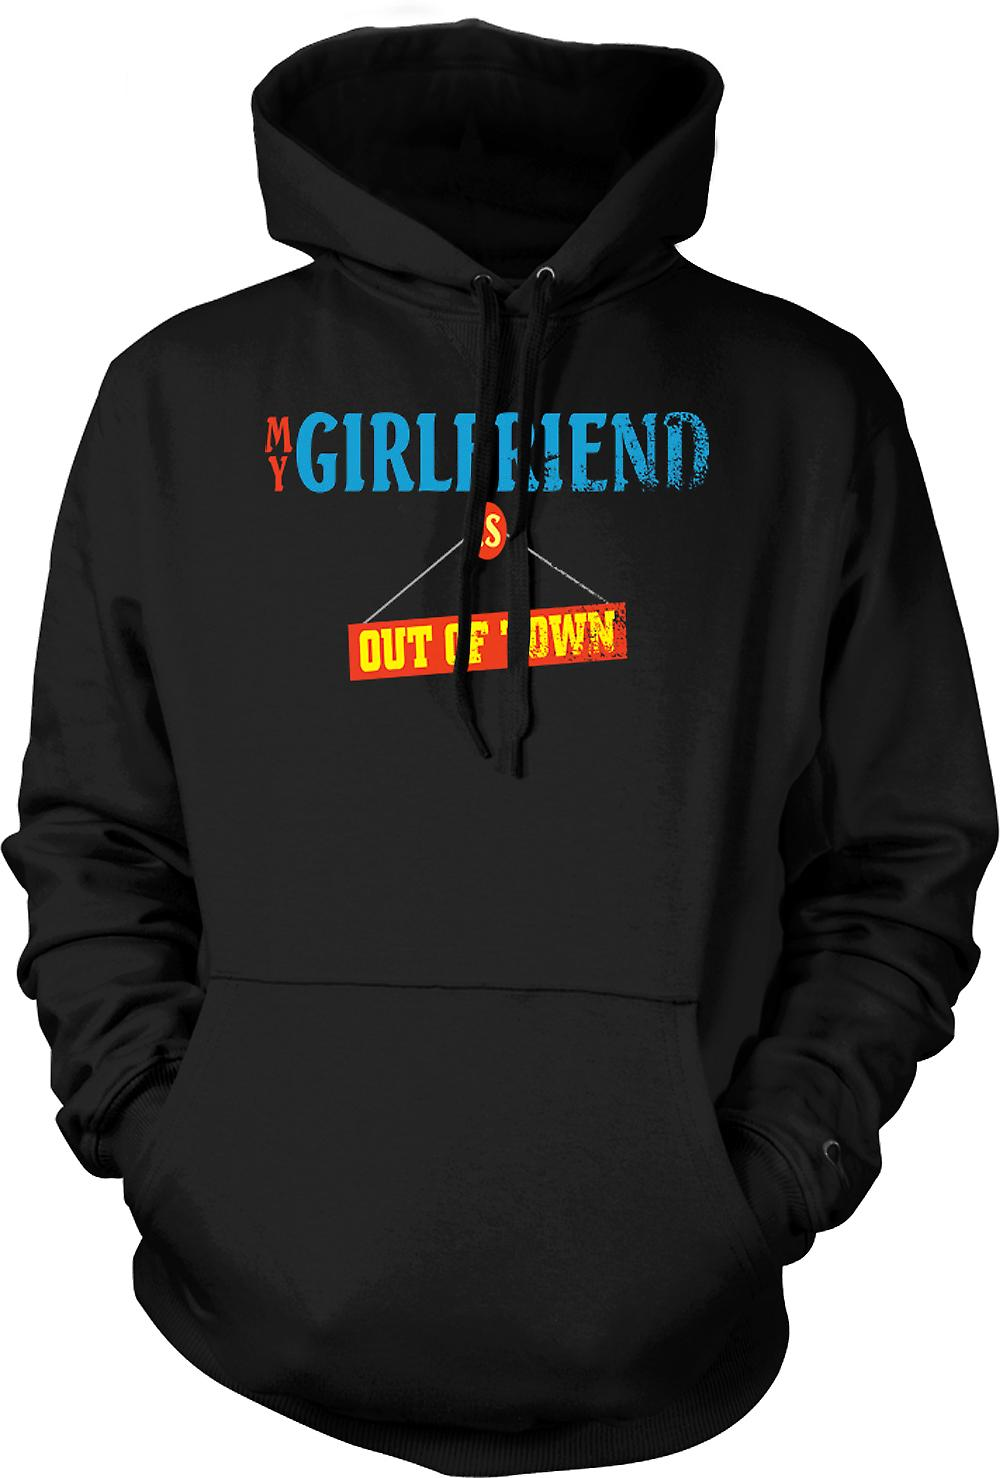 Mens Hoodie - My Girlfriend Is Out Of Town - Joke